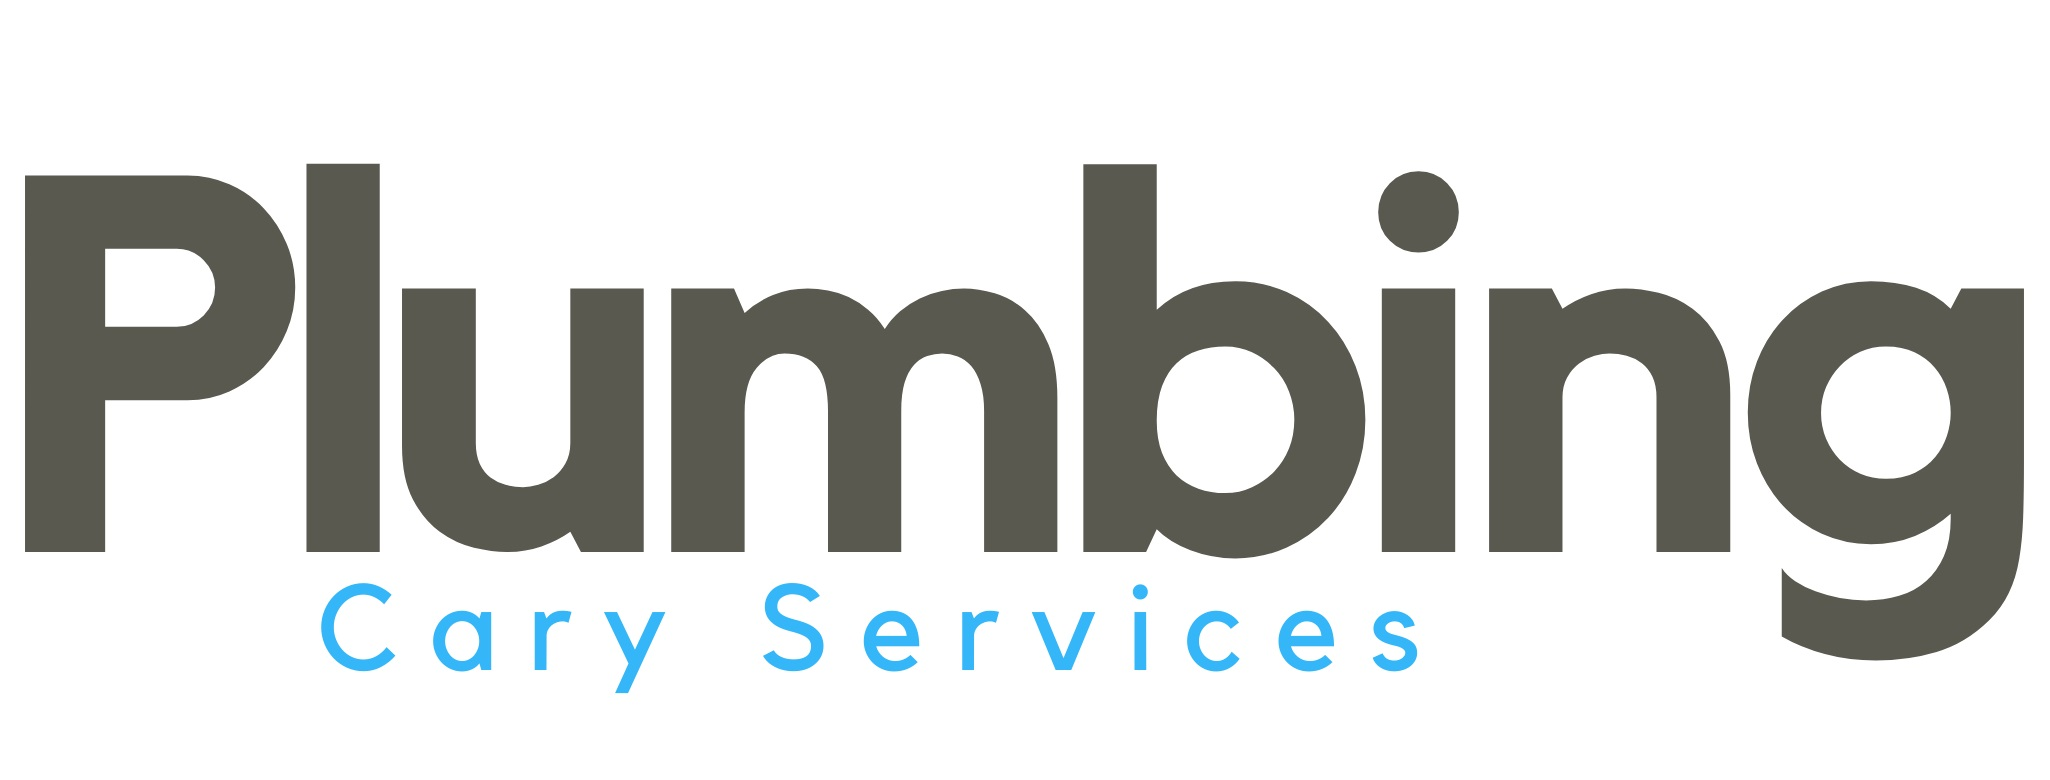 Plumbing Cary Services